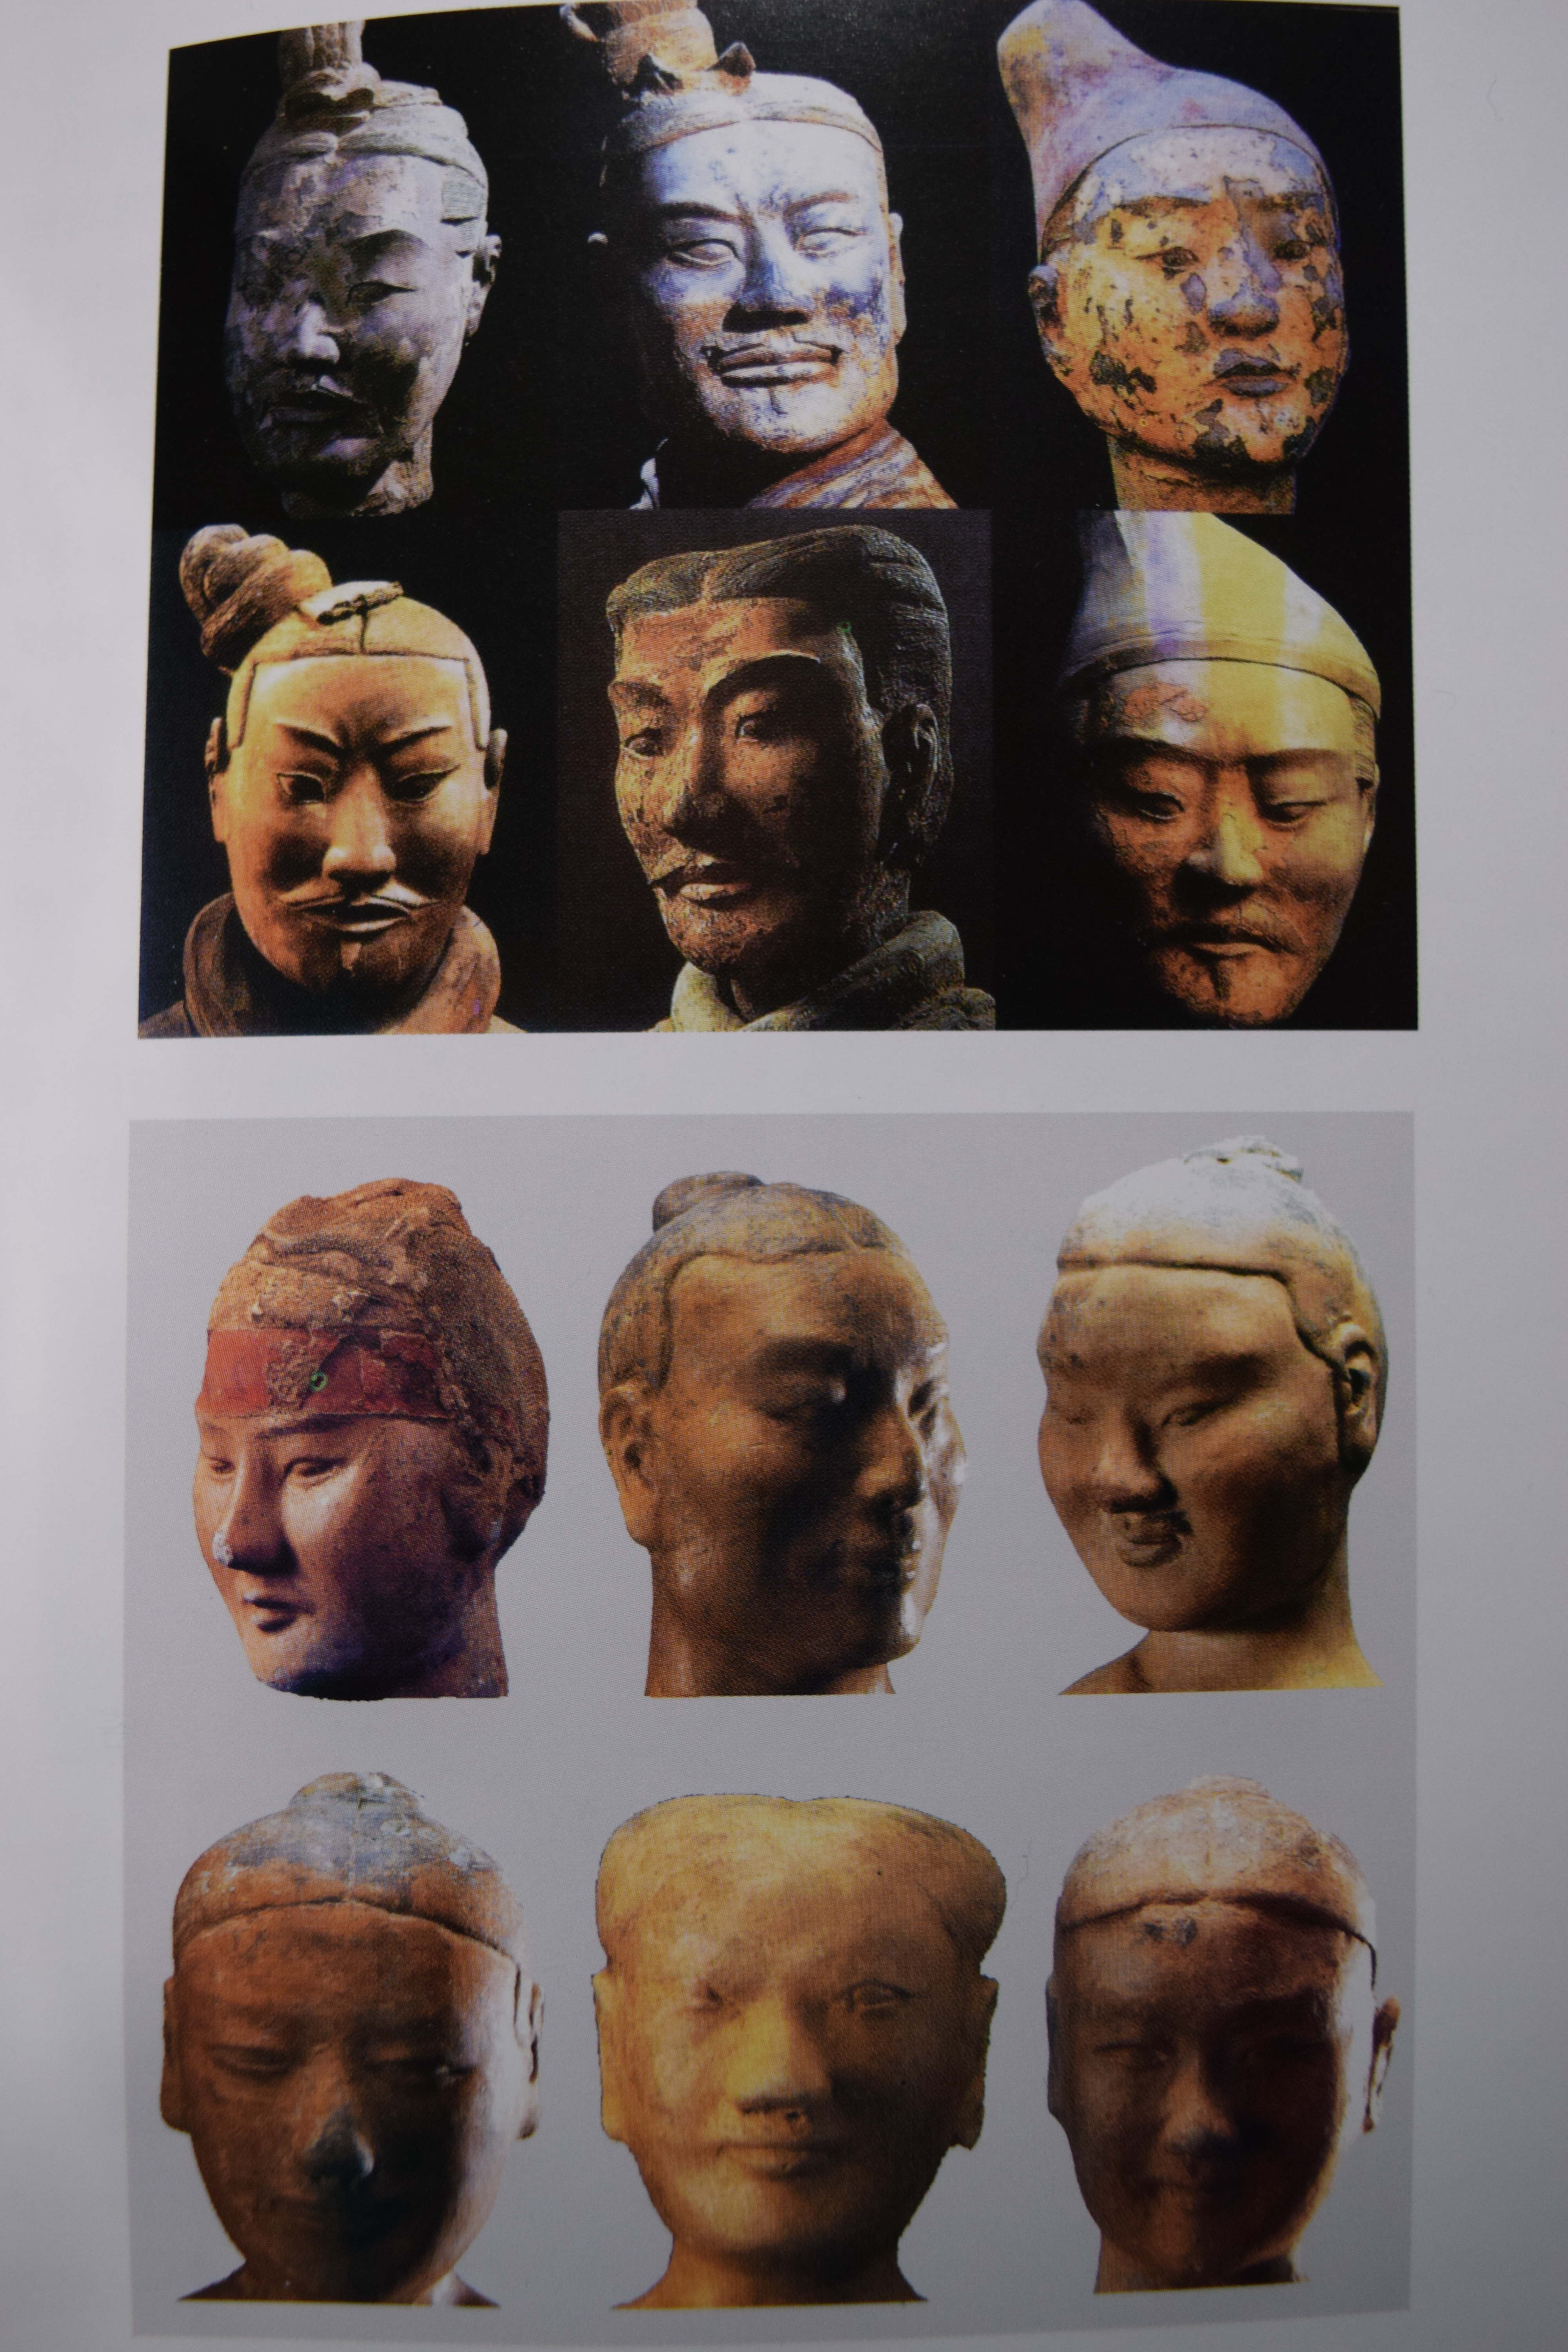 taken from a book - just to show the different facial expressions between the Qin terracotta warriors (top 6) and the Han clay figurines